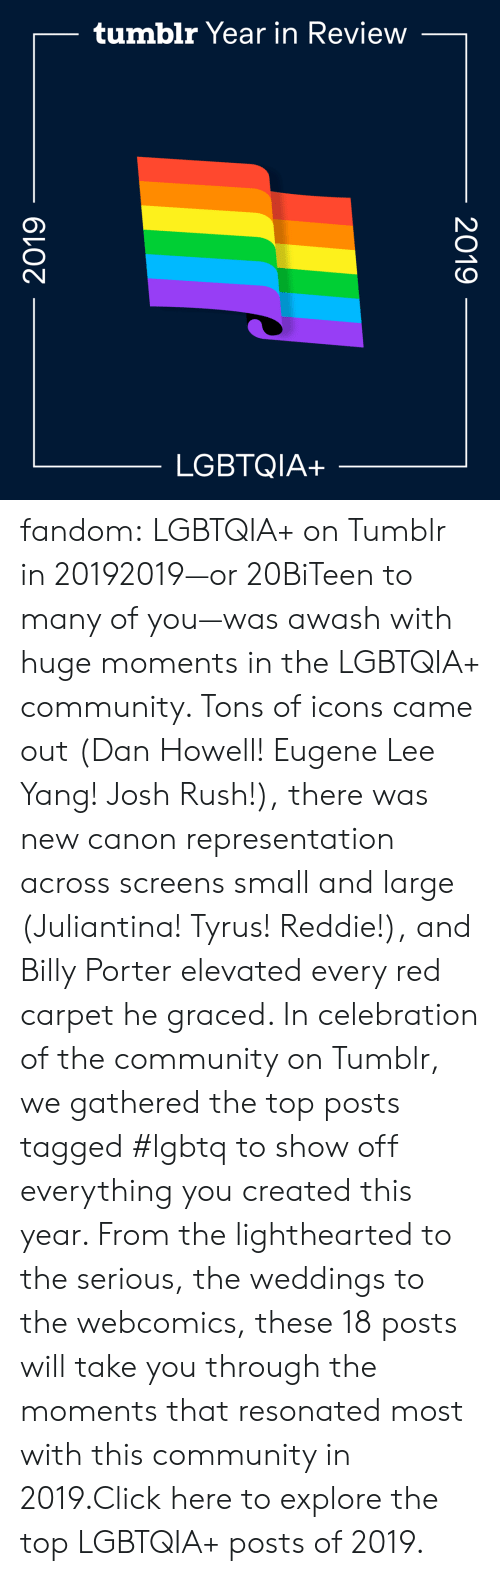 Tagged: tumblr Year in Review  LGBTQIA+  2019  2019 fandom:  LGBTQIA+ on Tumblr in 20192019—or 20BiTeen to many of you—was awash with huge moments in the LGBTQIA+ community. Tons of icons came out (Dan Howell! Eugene Lee Yang! Josh Rush!), there was new canon representation across screens small and large (Juliantina! Tyrus! Reddie!), and Billy Porter elevated every red carpet he graced. In celebration of the community on Tumblr, we gathered the top posts tagged #lgbtq to show off everything you created this year. From the lighthearted to the serious, the weddings to the webcomics, these 18 posts will take you through the moments that resonated most with this community in 2019.Click here to explore the top LGBTQIA+ posts of 2019.